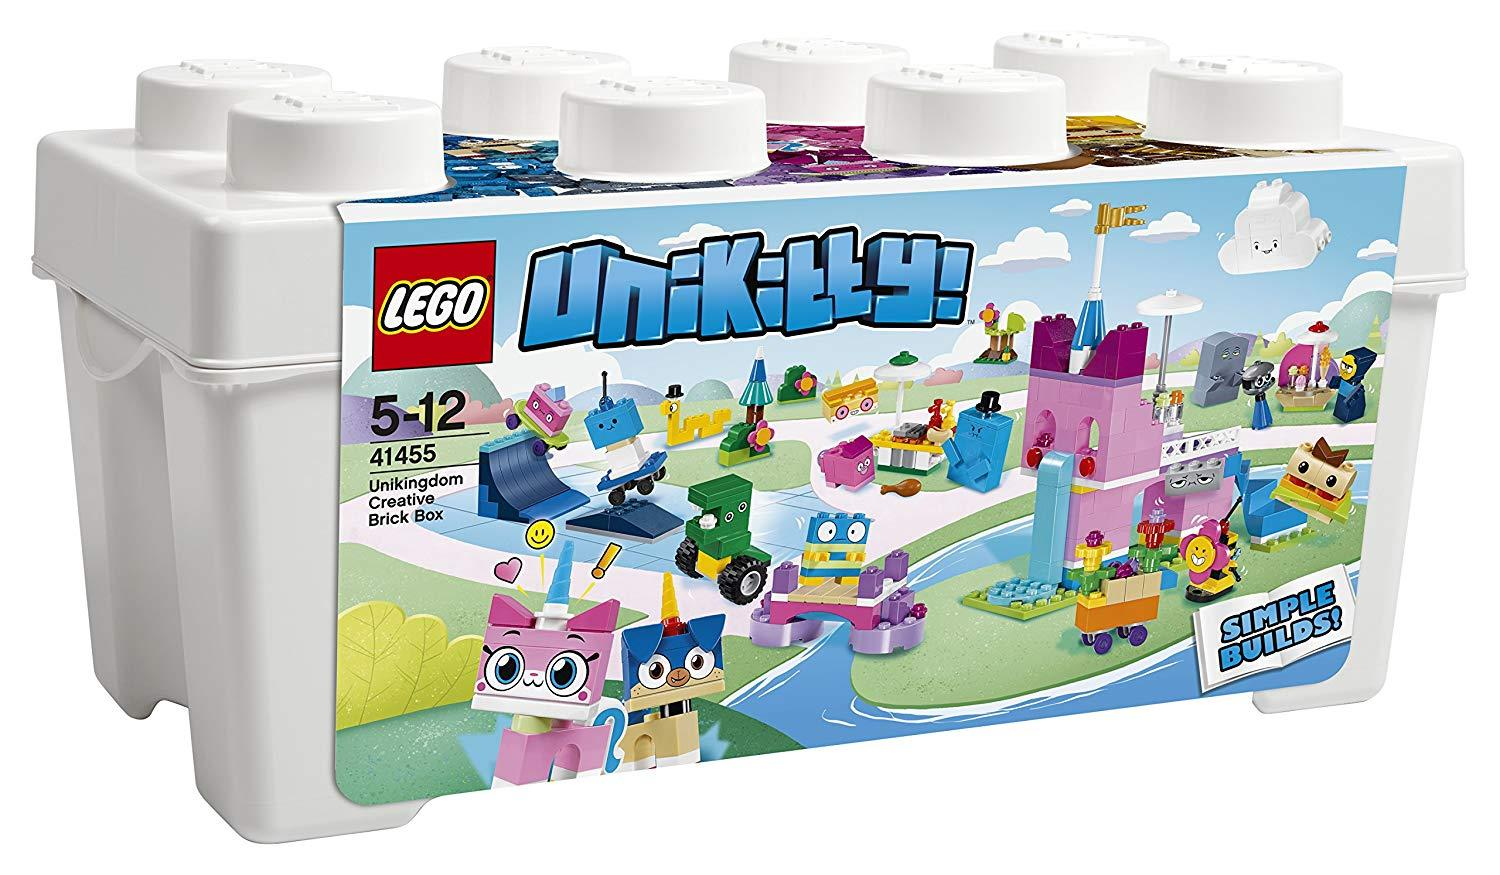 Lego Unikitty Unikingdom Creative Brick Box (41455)